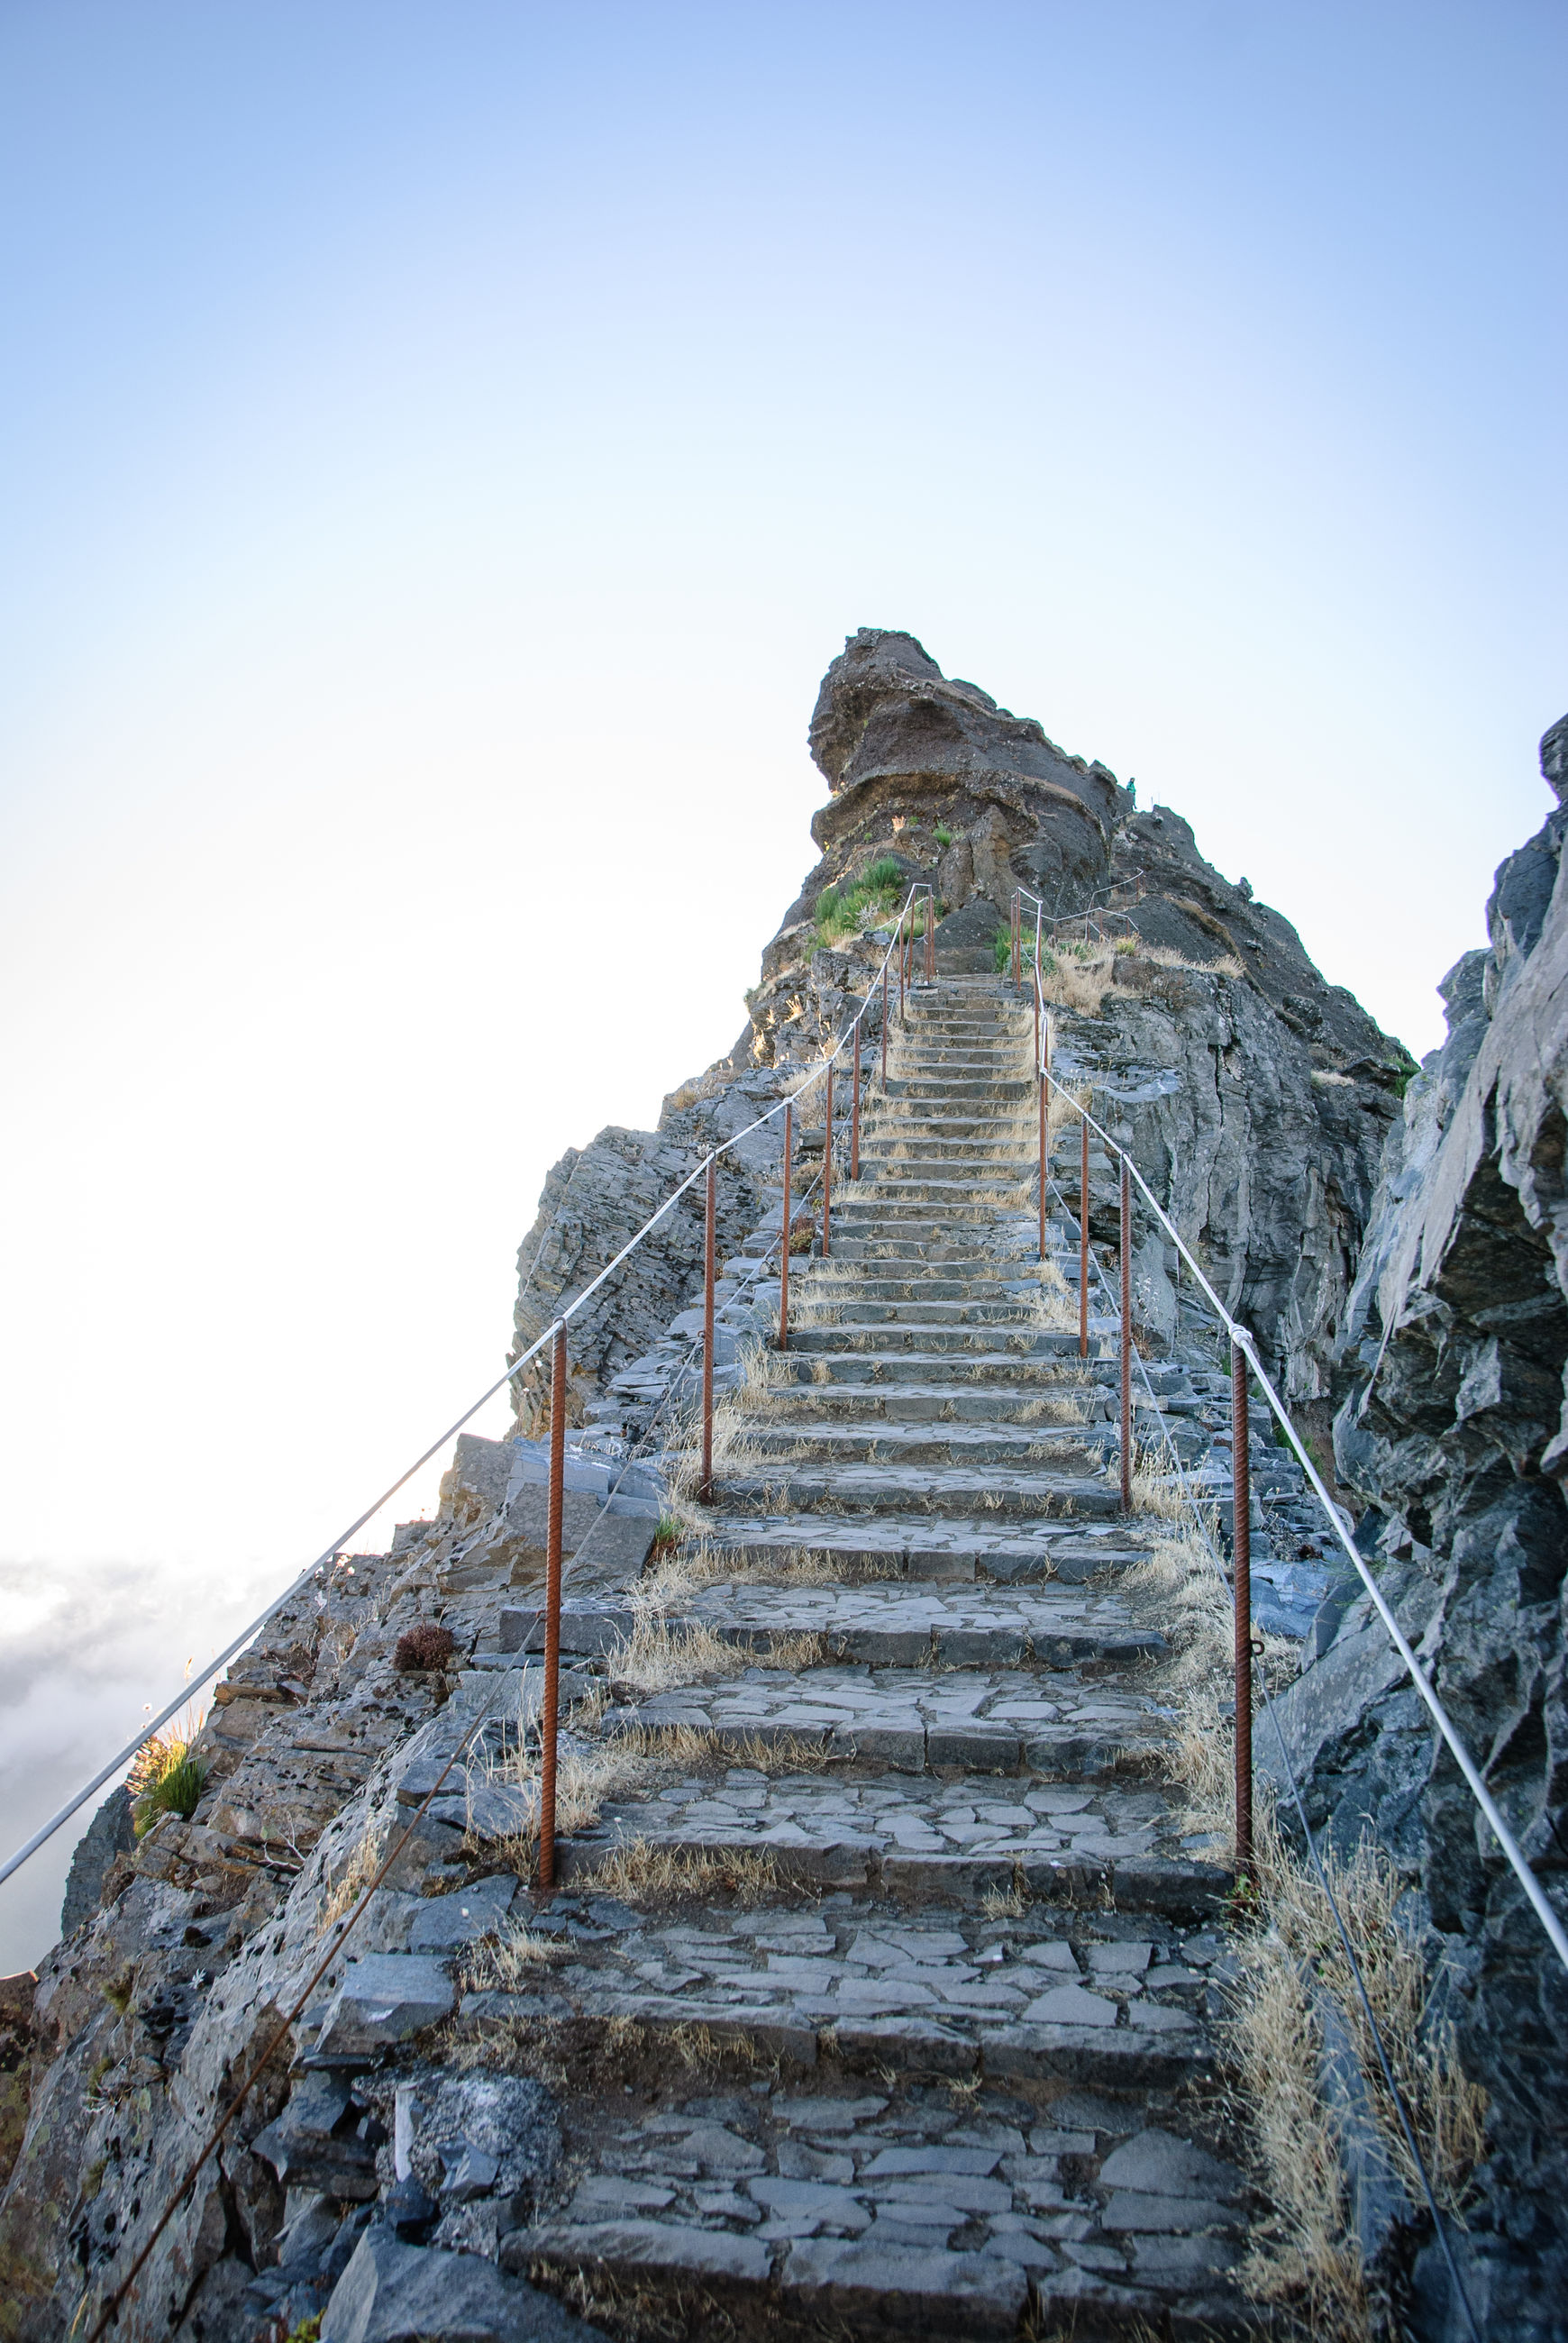 LOW ANGLE VIEW OF STEPS AGAINST CLEAR SKY